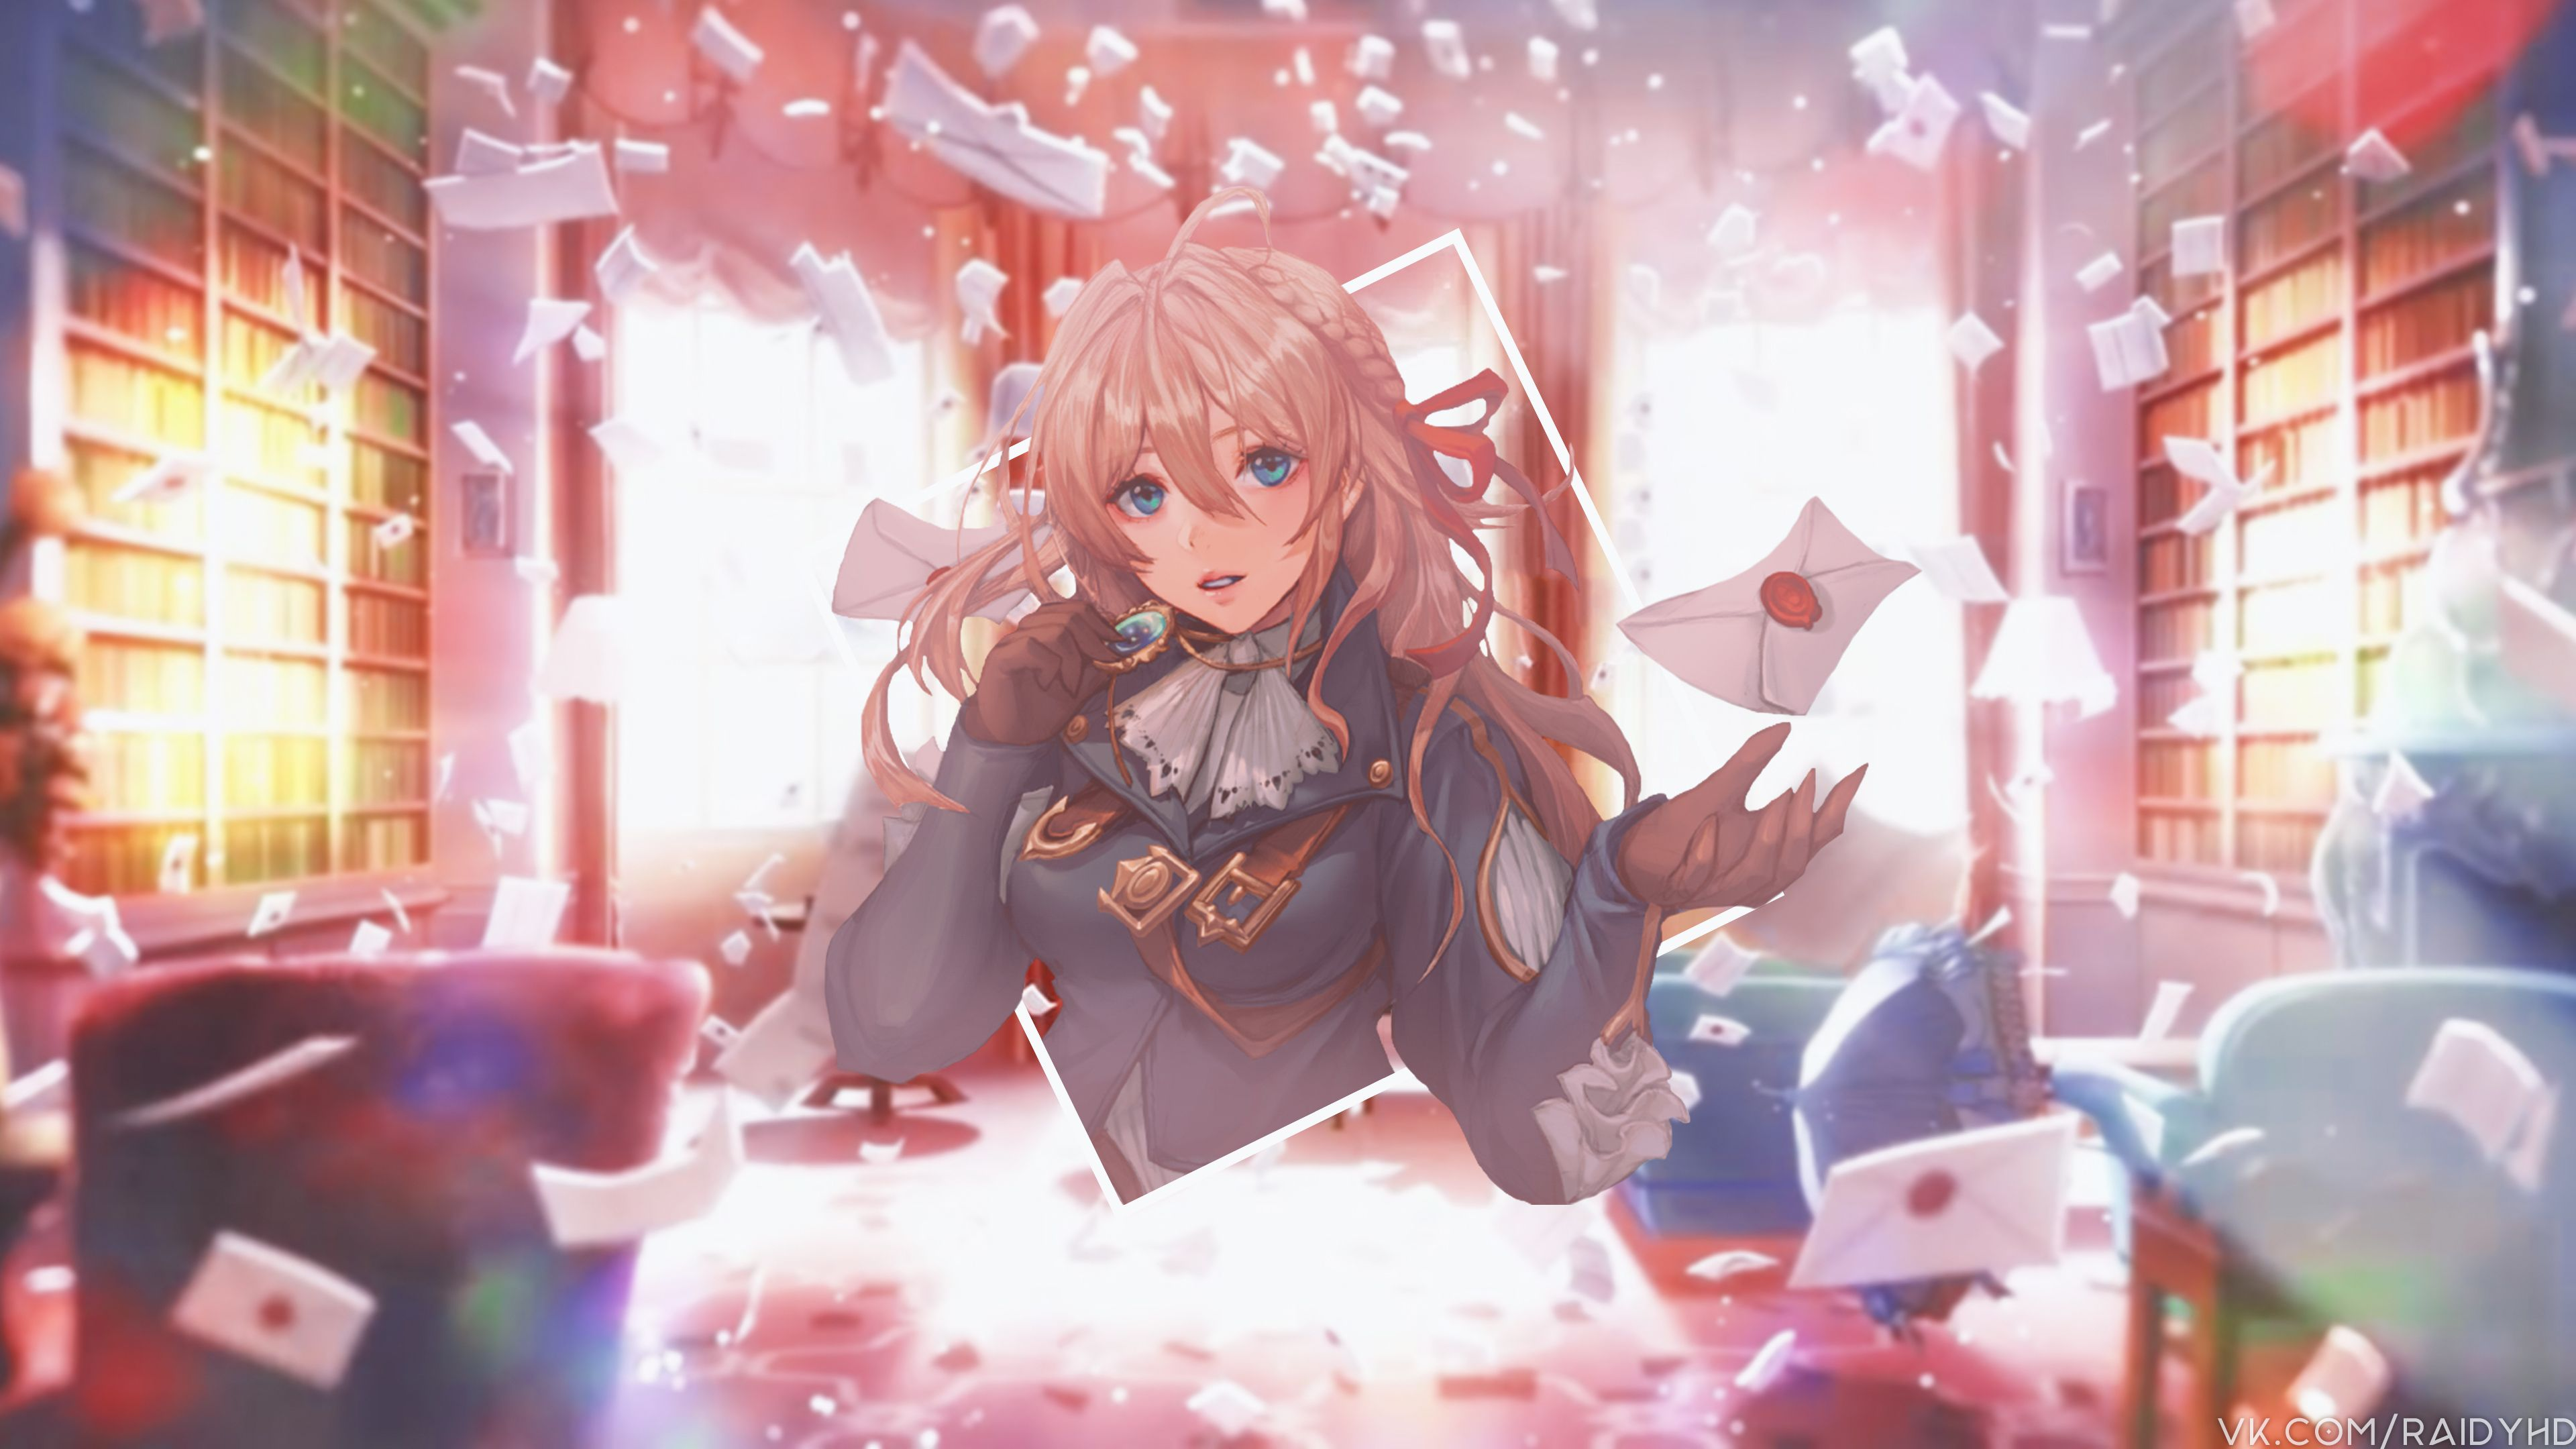 Pin By 4k Wallpapers On Anime Girls Violet Evergarden Wallpaper Violet Evergarden Anime Android Wallpaper Anime